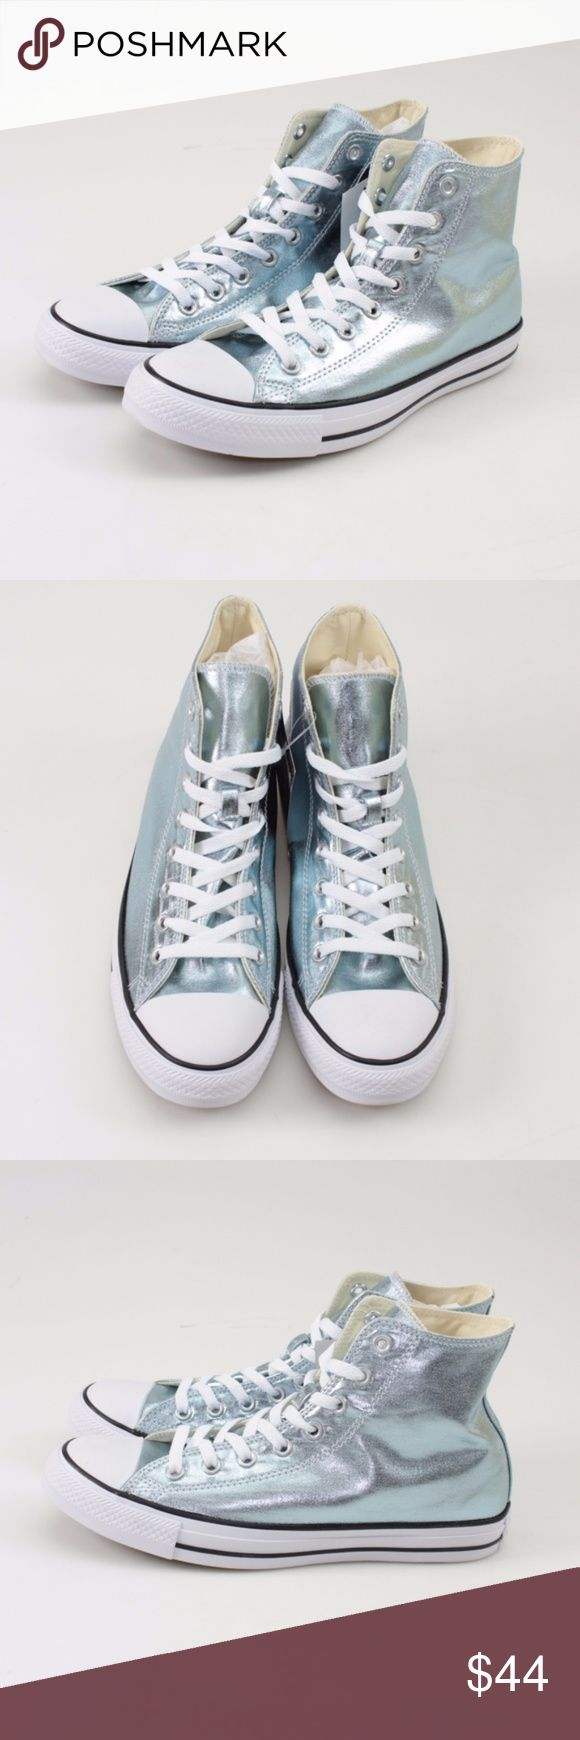 Converse Metallic Glacier High Tops // Size M9 W11 Kick back in these Converse All Star high-top shoes Padded footbed offers lasting comfort Classic canvas upper with a metallic foil finish Signature Chuck Taylor design including the famous rubber cap toe Rubber, fabric outsole Men's Size 9 = Women's Size 11  Photos show all details, so look over thoroughly. These are brand new in the original box! #28WKSD // Converse // Chuck Taylors // All Star // High Top // Metallic Glacier Converse…